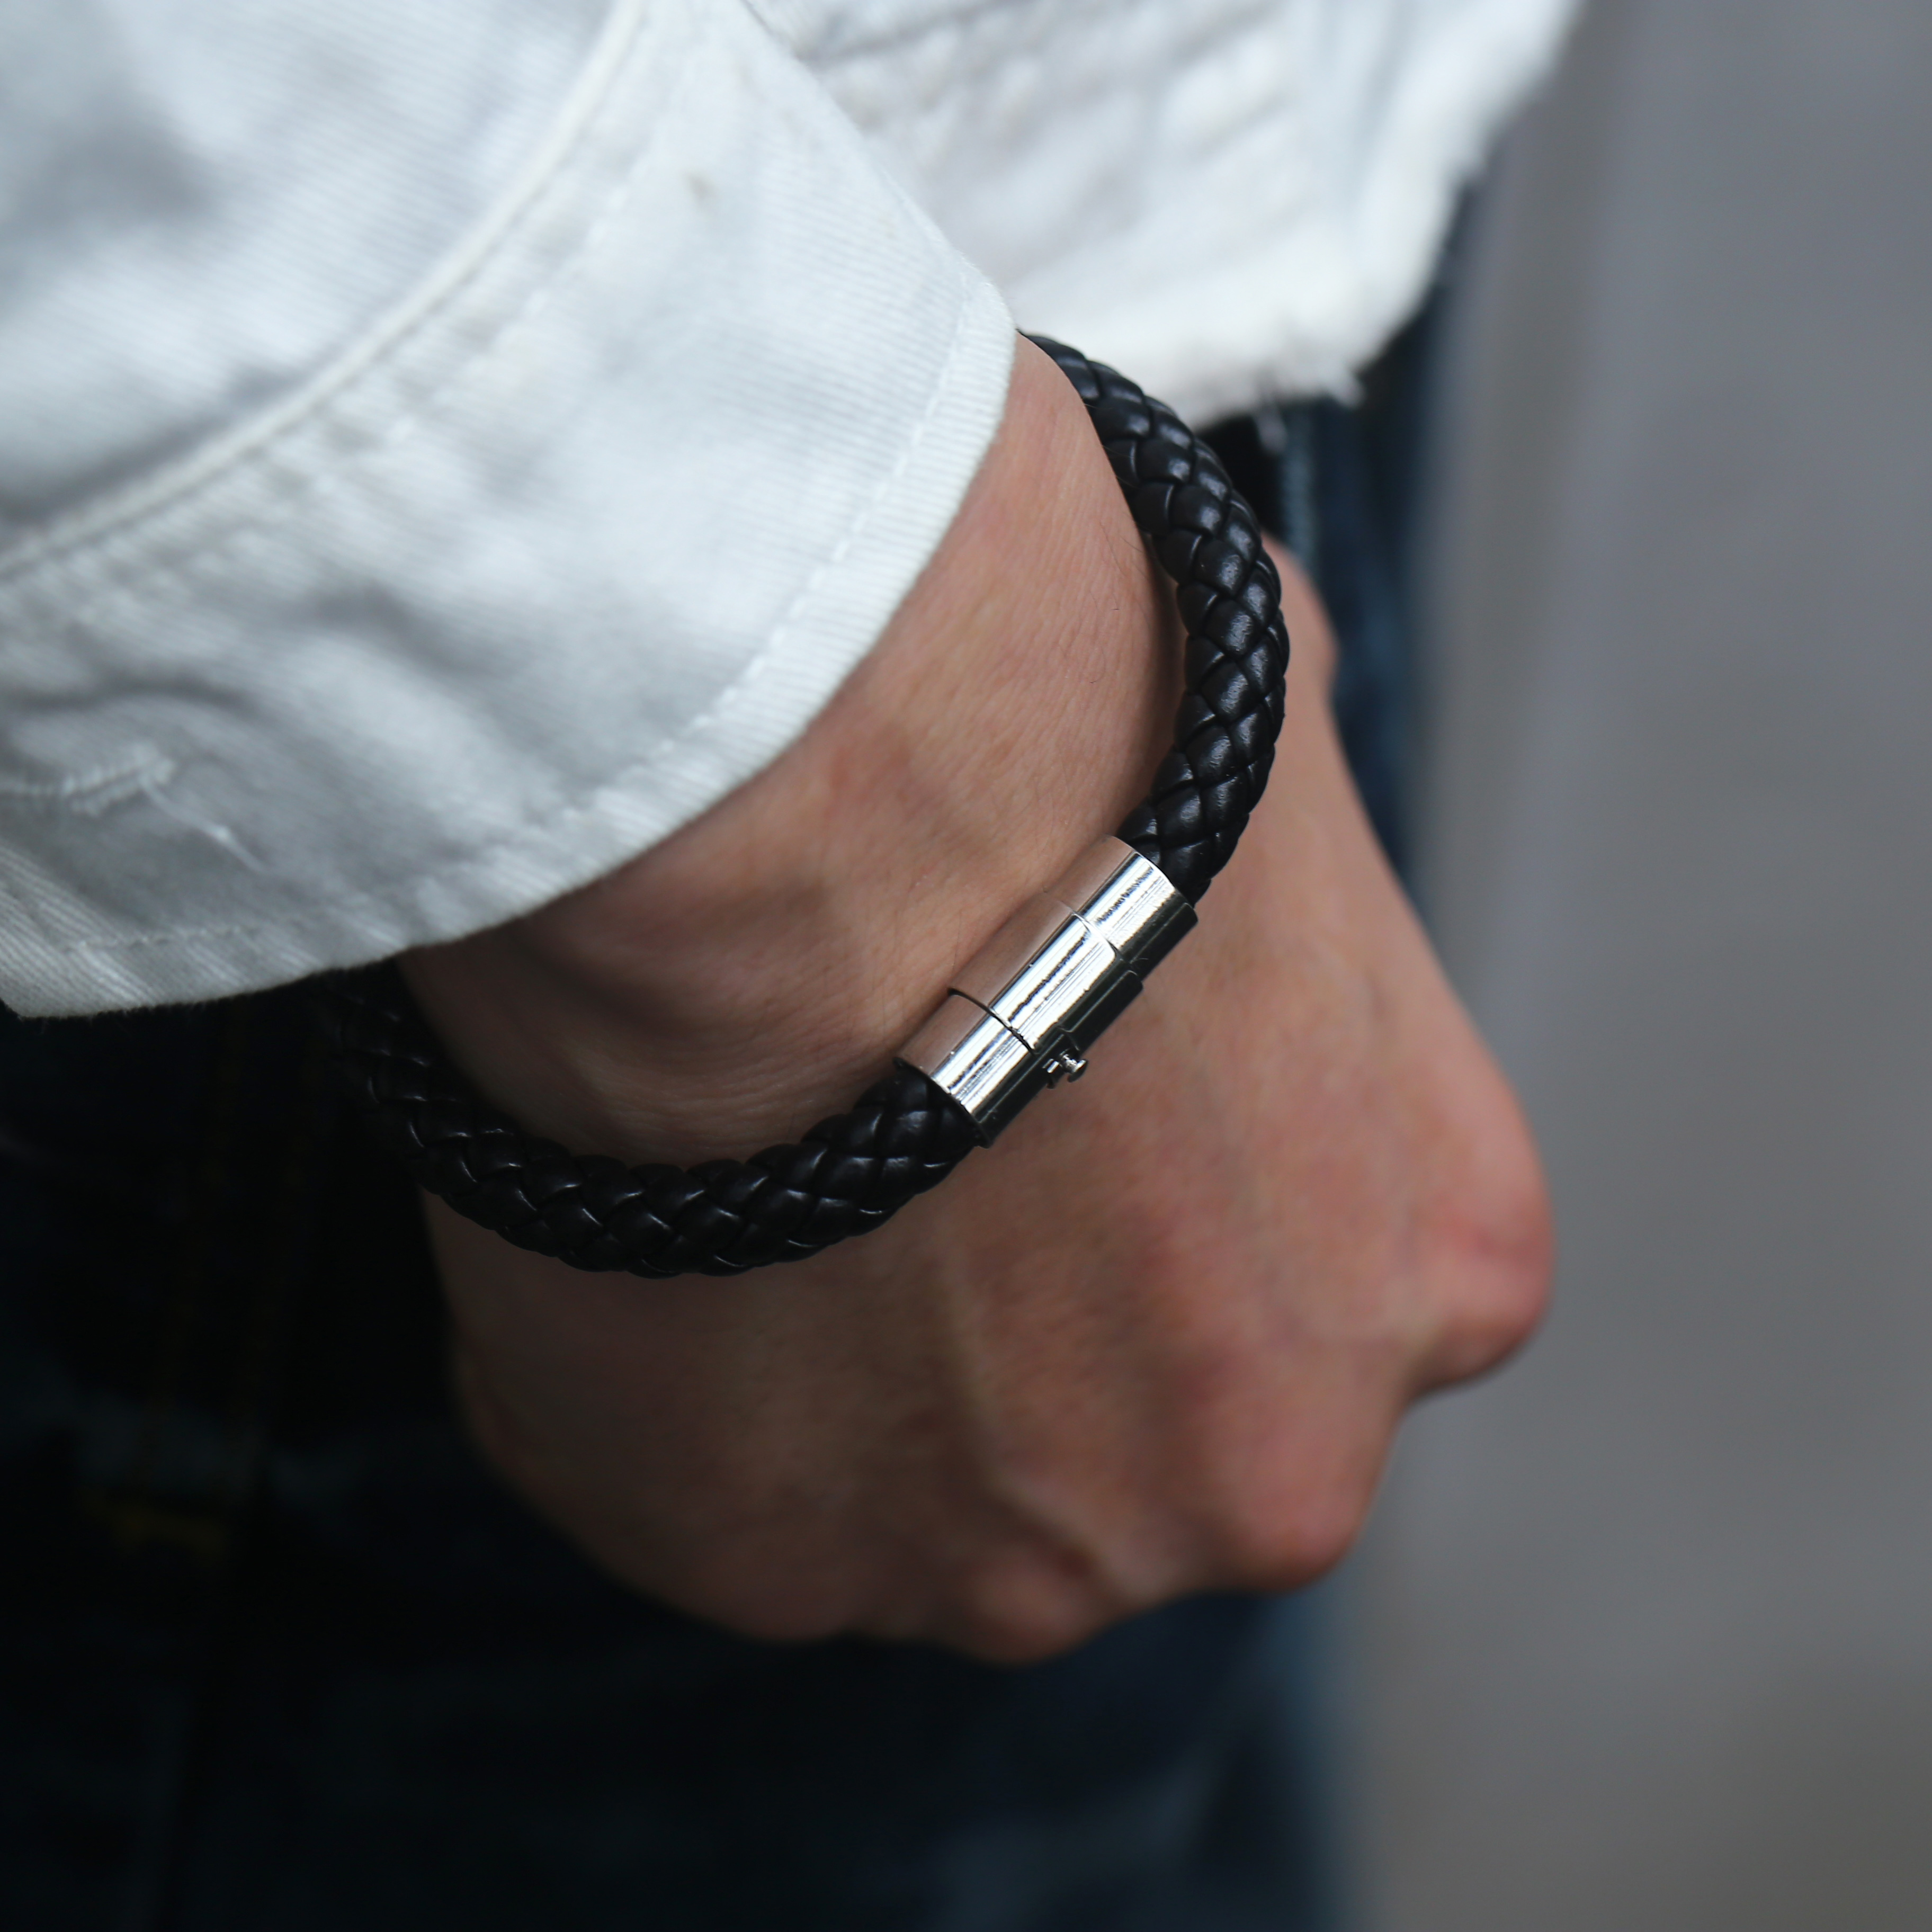 4/6/8mm Men's Leather Bracelet Black Brown Braided Bracelets Male Jewelry Gift Stainless Steel Magnet Clasp LBM118A